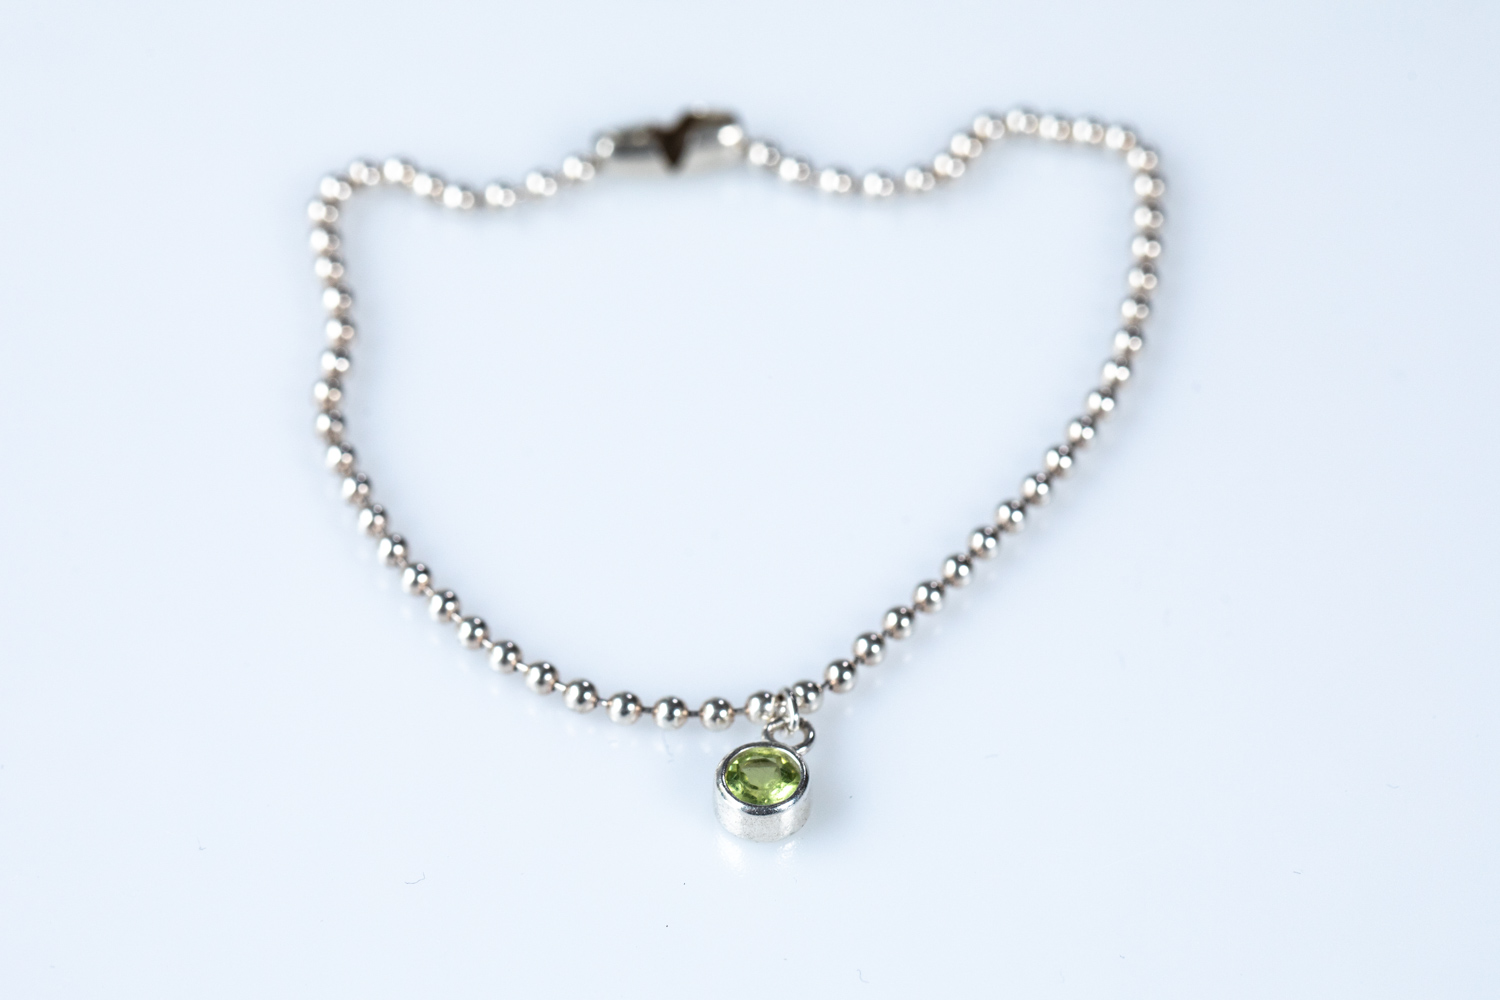 Sterling silver ball chain with birthstone charm set in sterling silver - £30